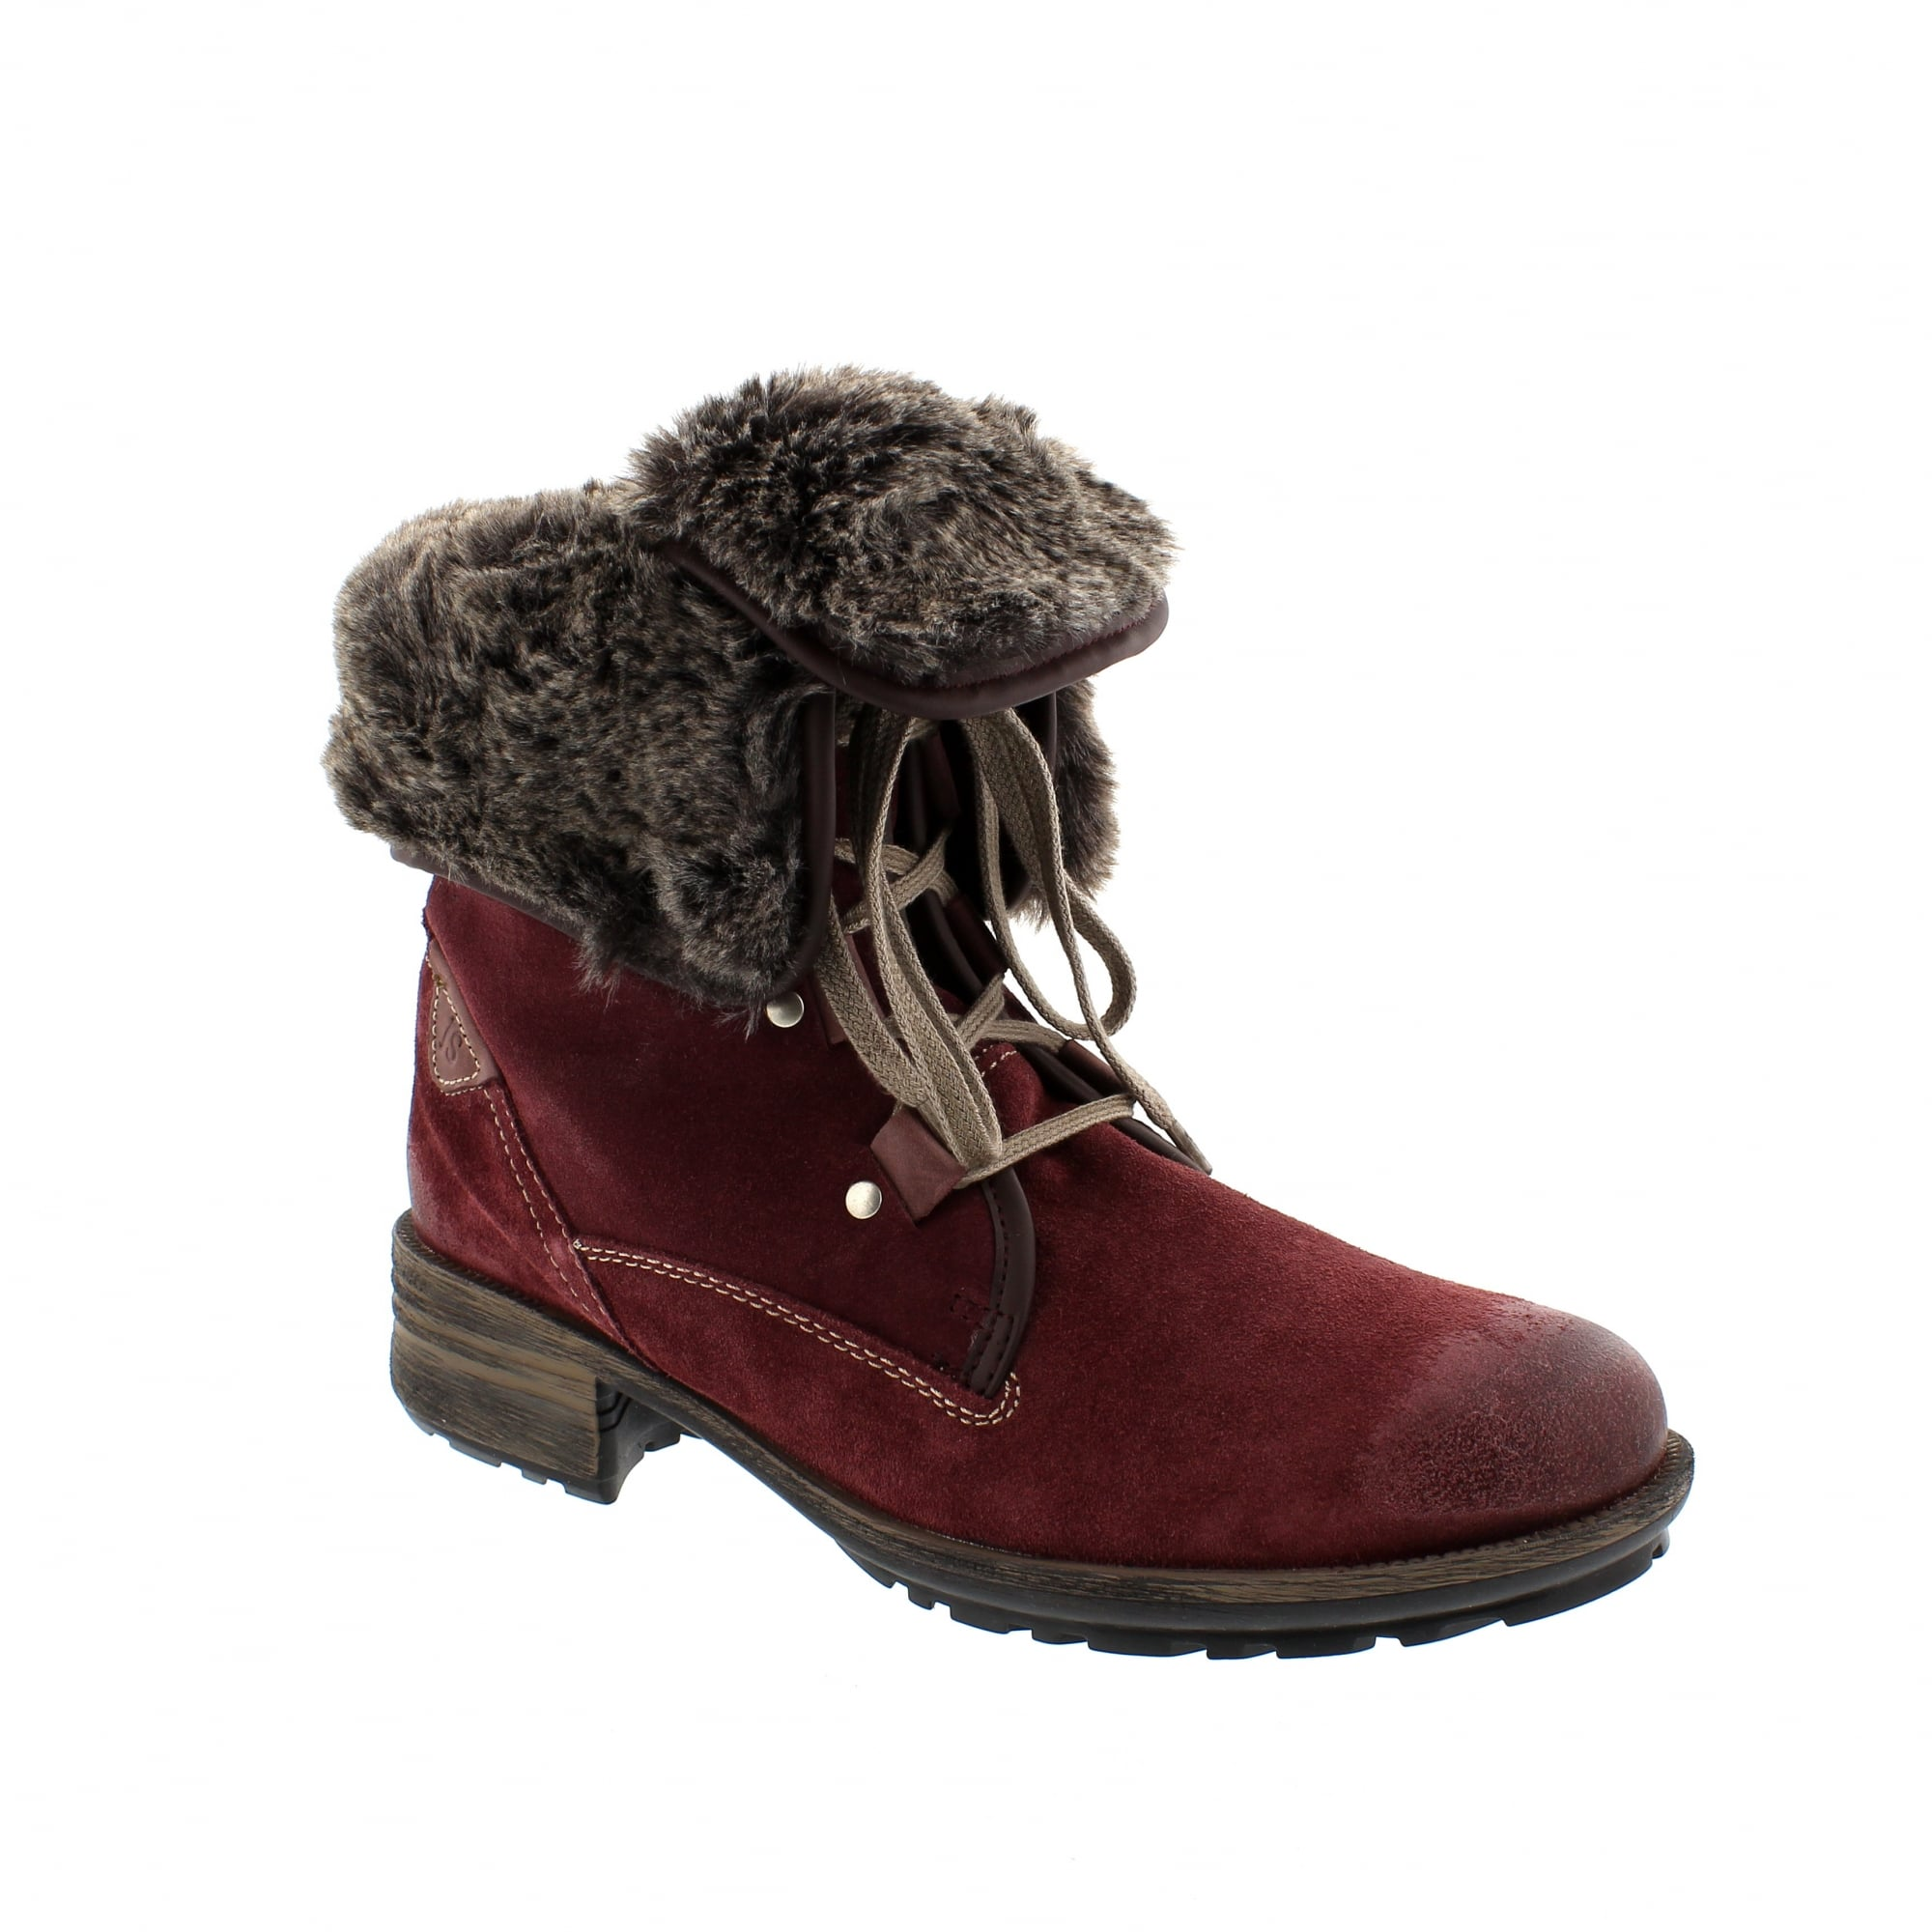 6bd29ee6303a7 Josef Seibel Sandra 04 Burgundy Suede Womens Ankle Boots | Rogerson ...